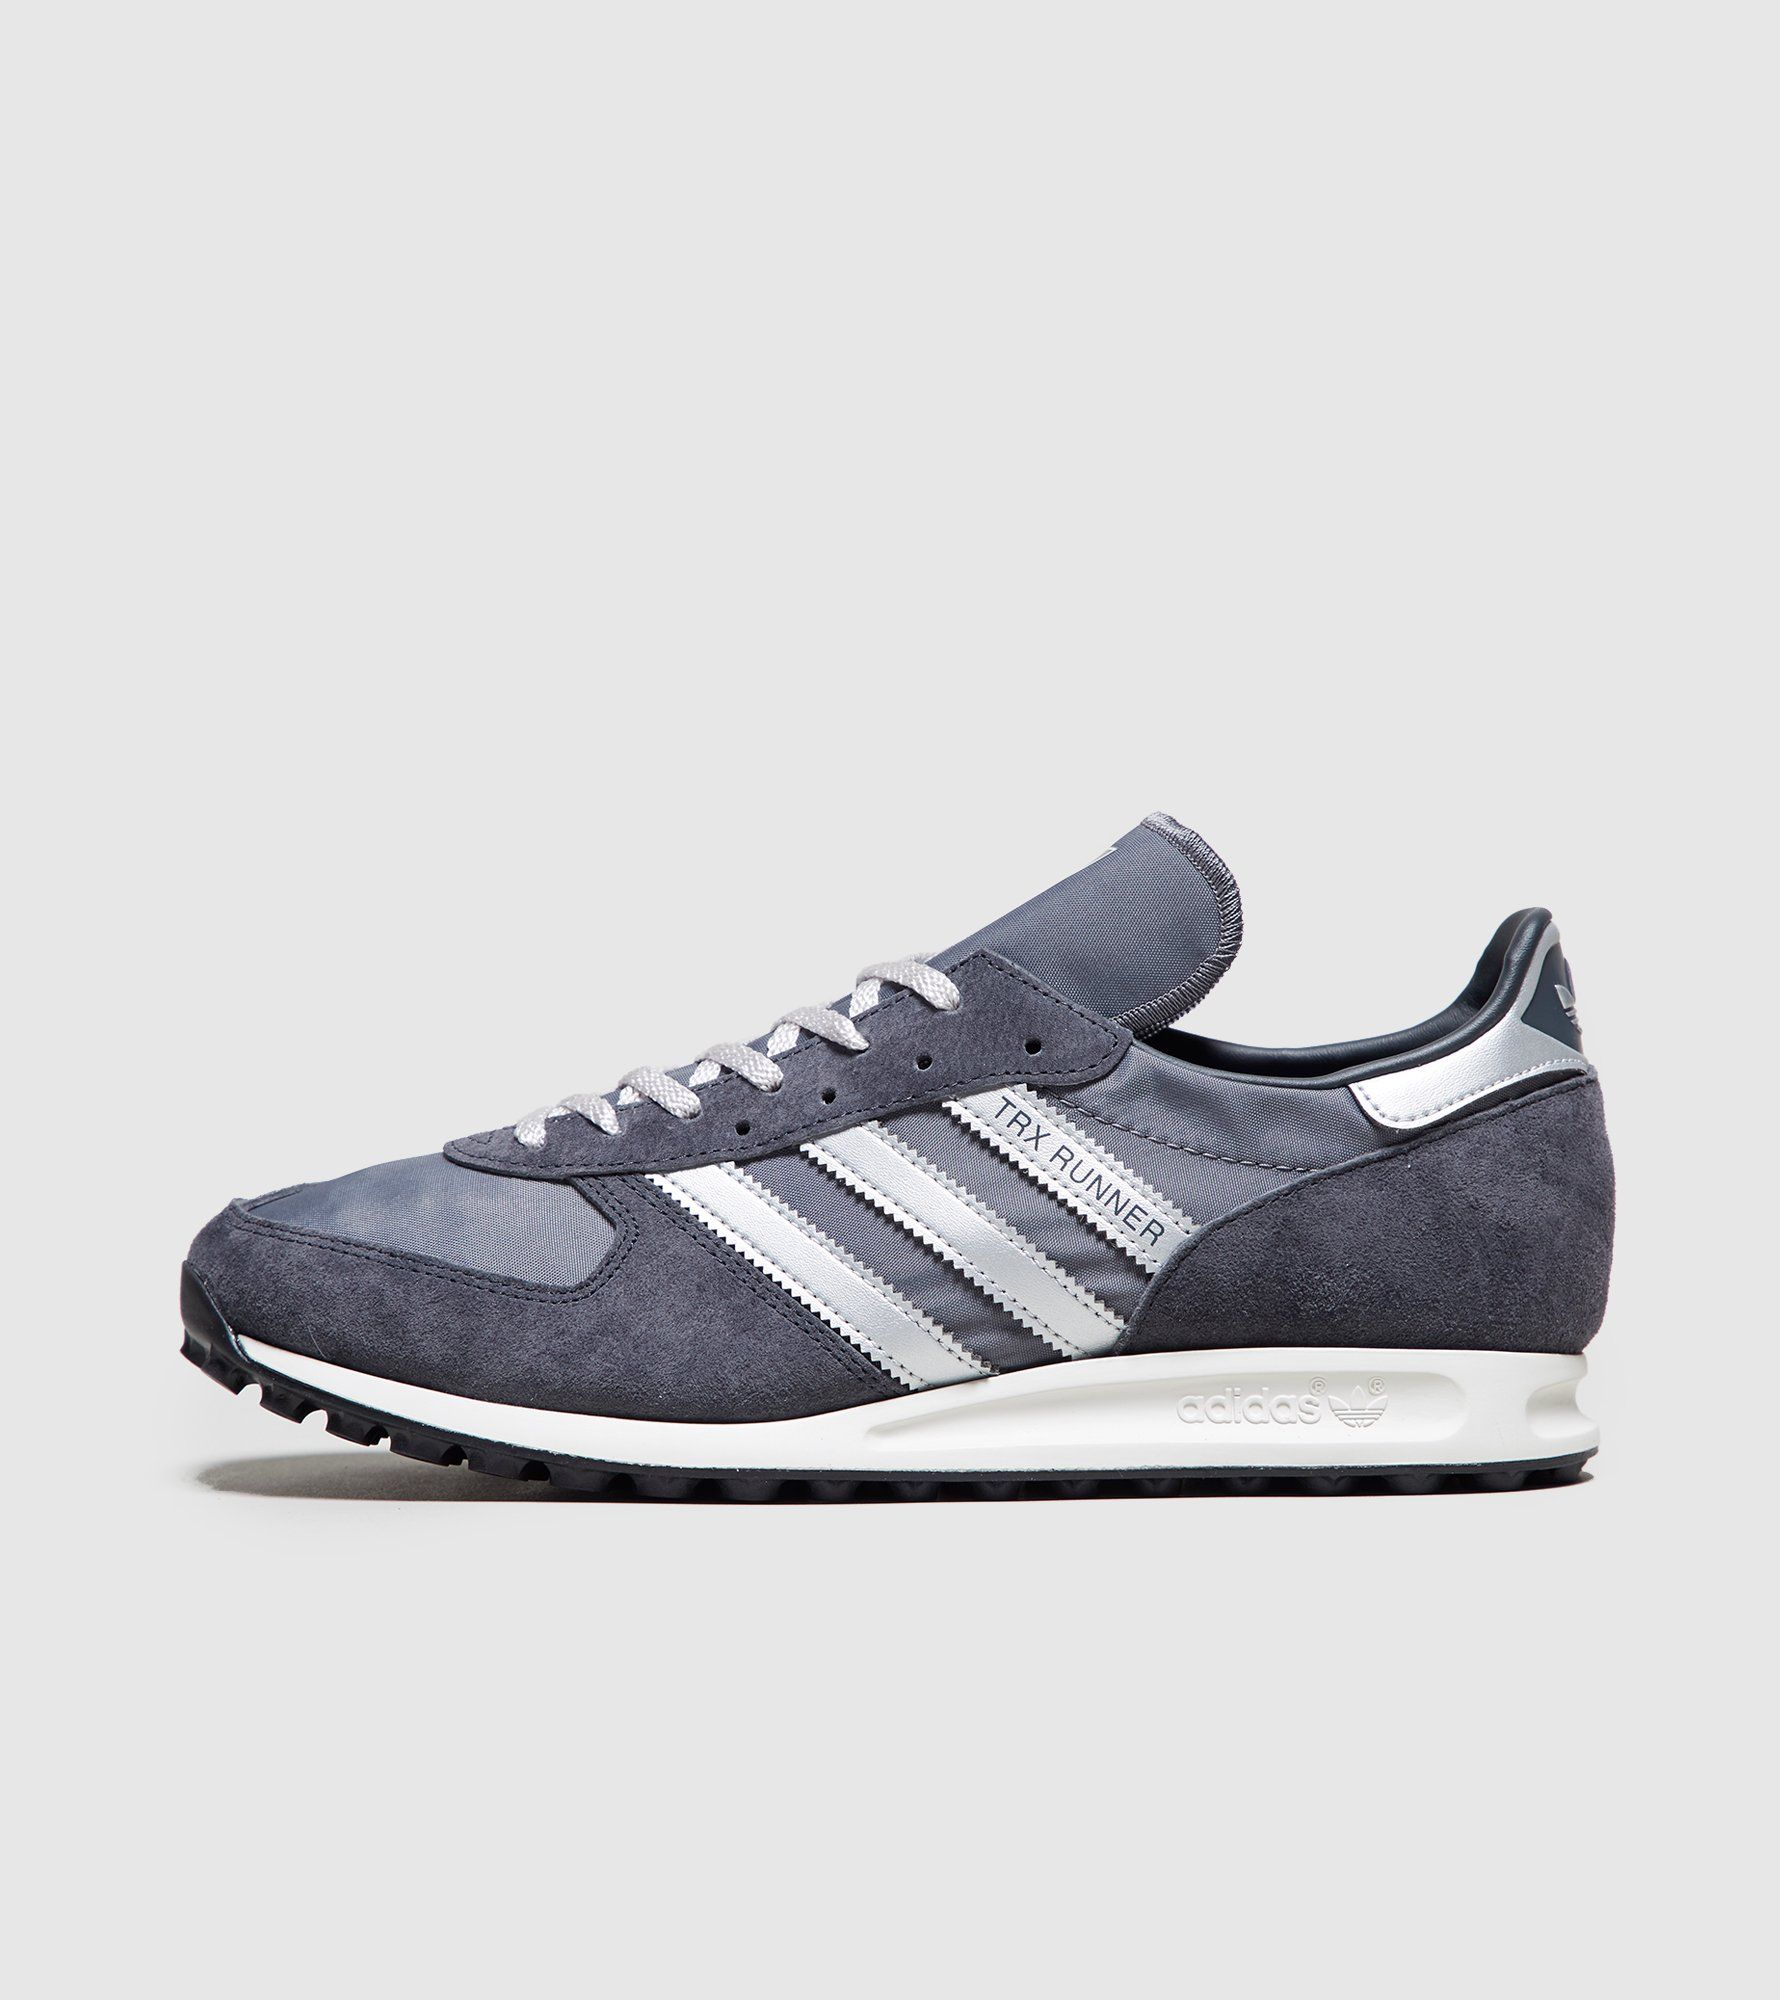 adidas Originals Archive TRX - size? Exclusive